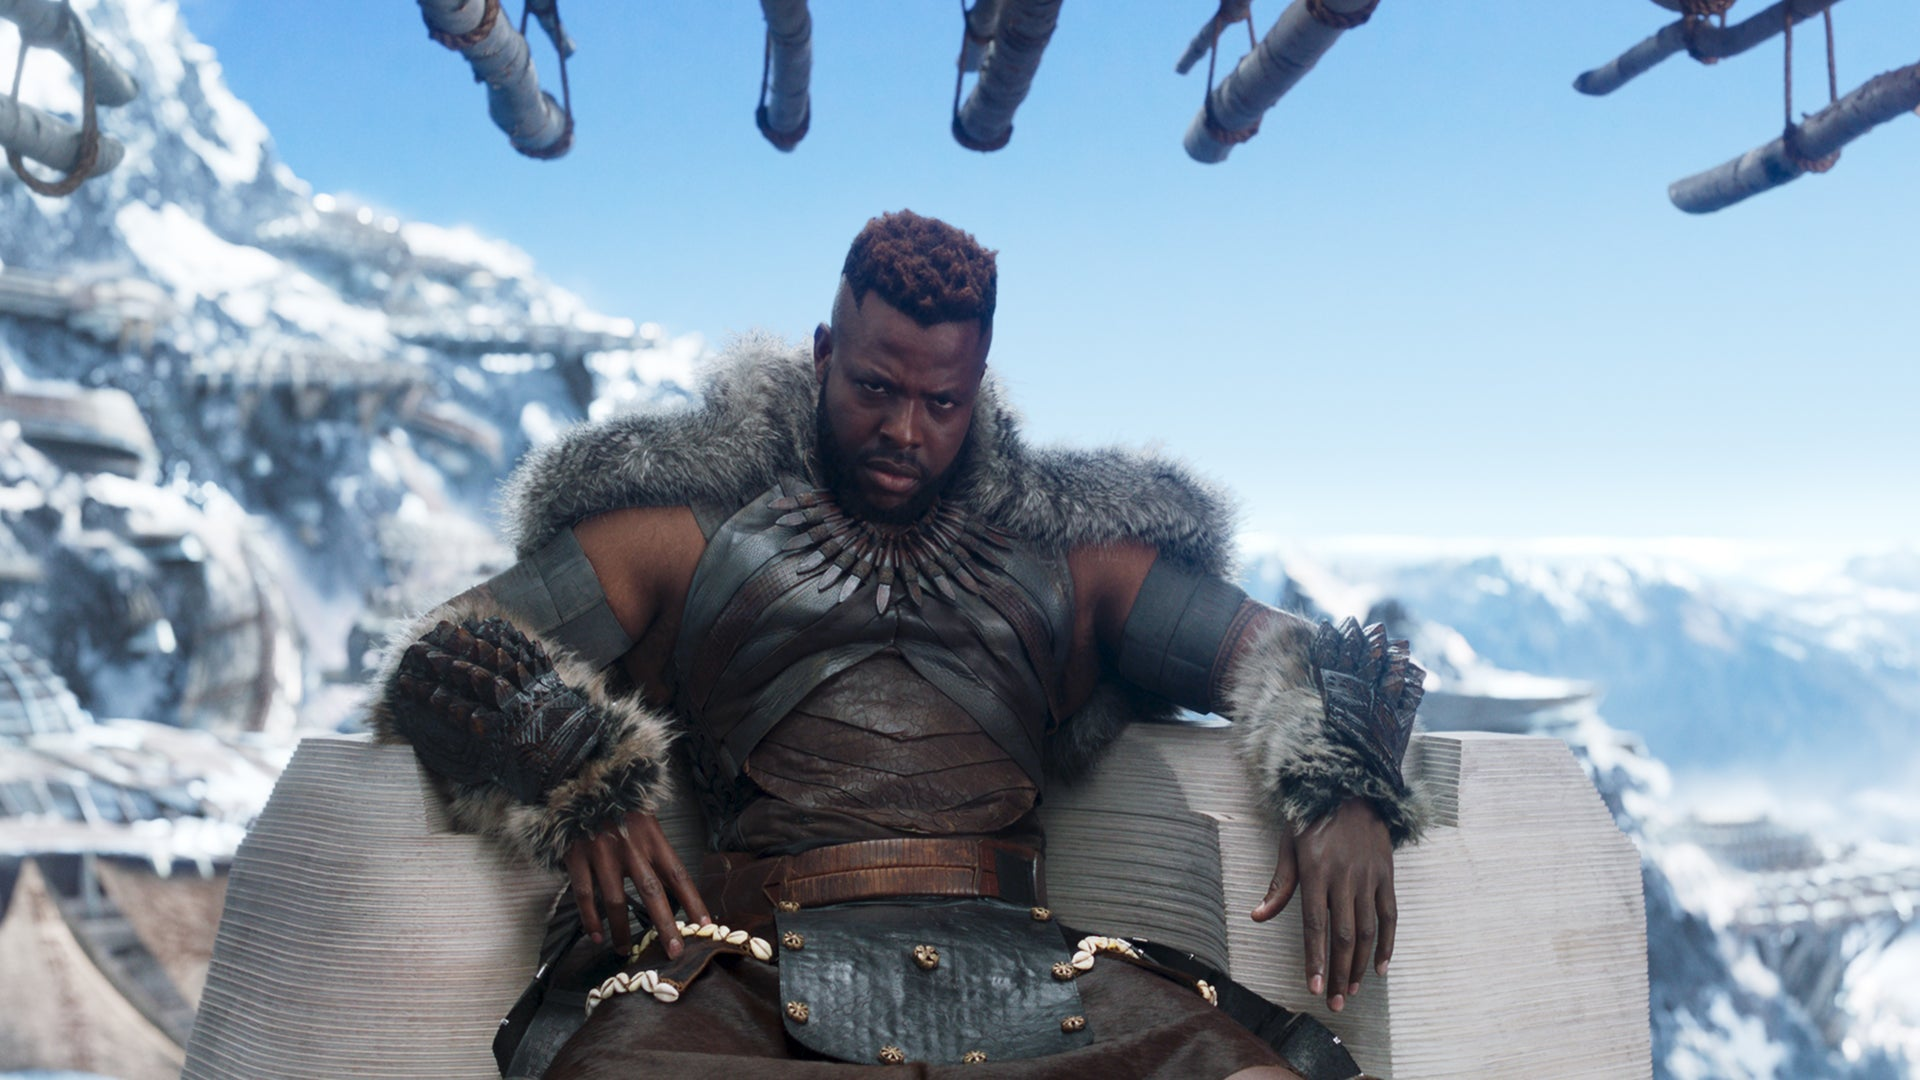 5 Things You're Thirsting To Know About 'Black Panther' Star Winston Duke aka M'Baku